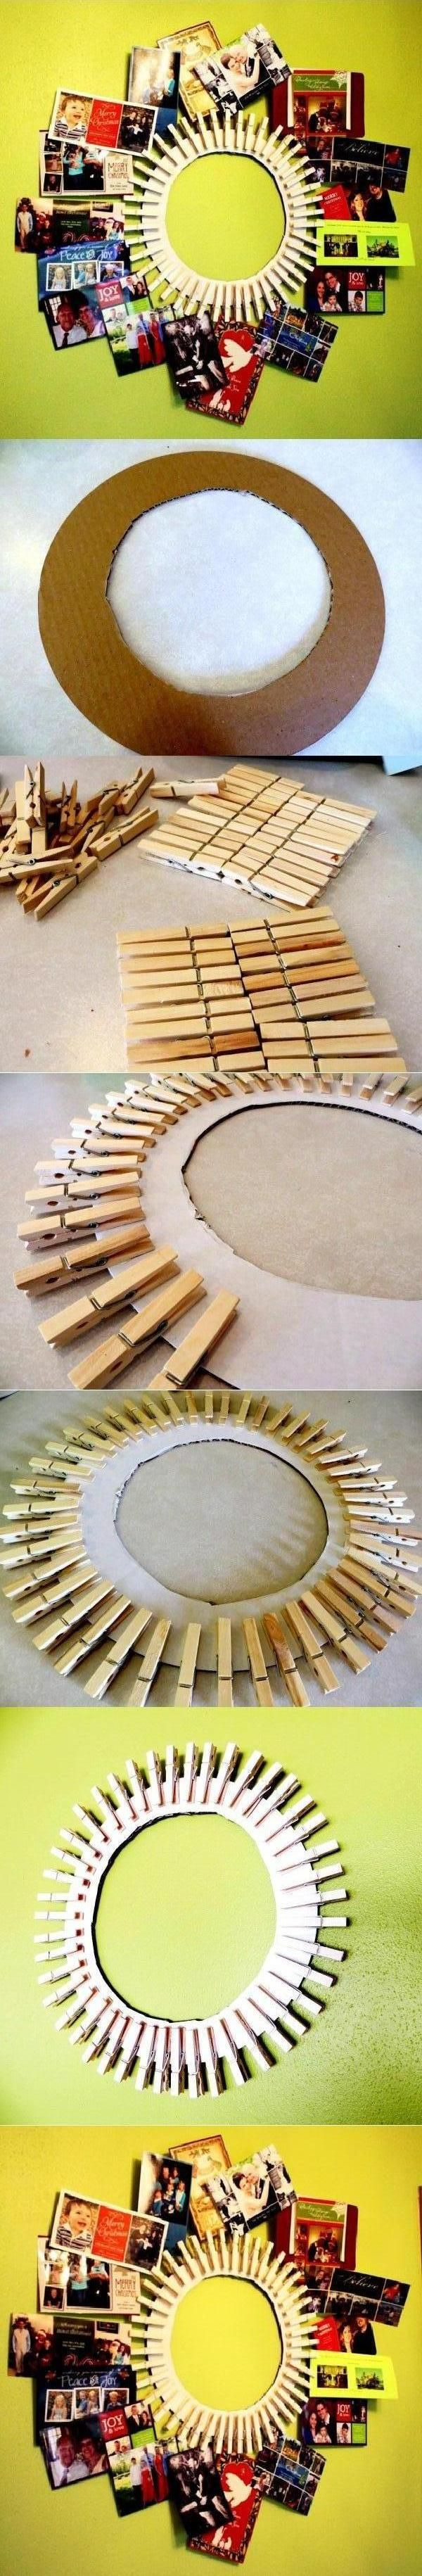 DIY Clothespin Photo Frame | iCreativeIdeas.com Follow Us on Facebook --> https://www.facebook.com/icreativeideas